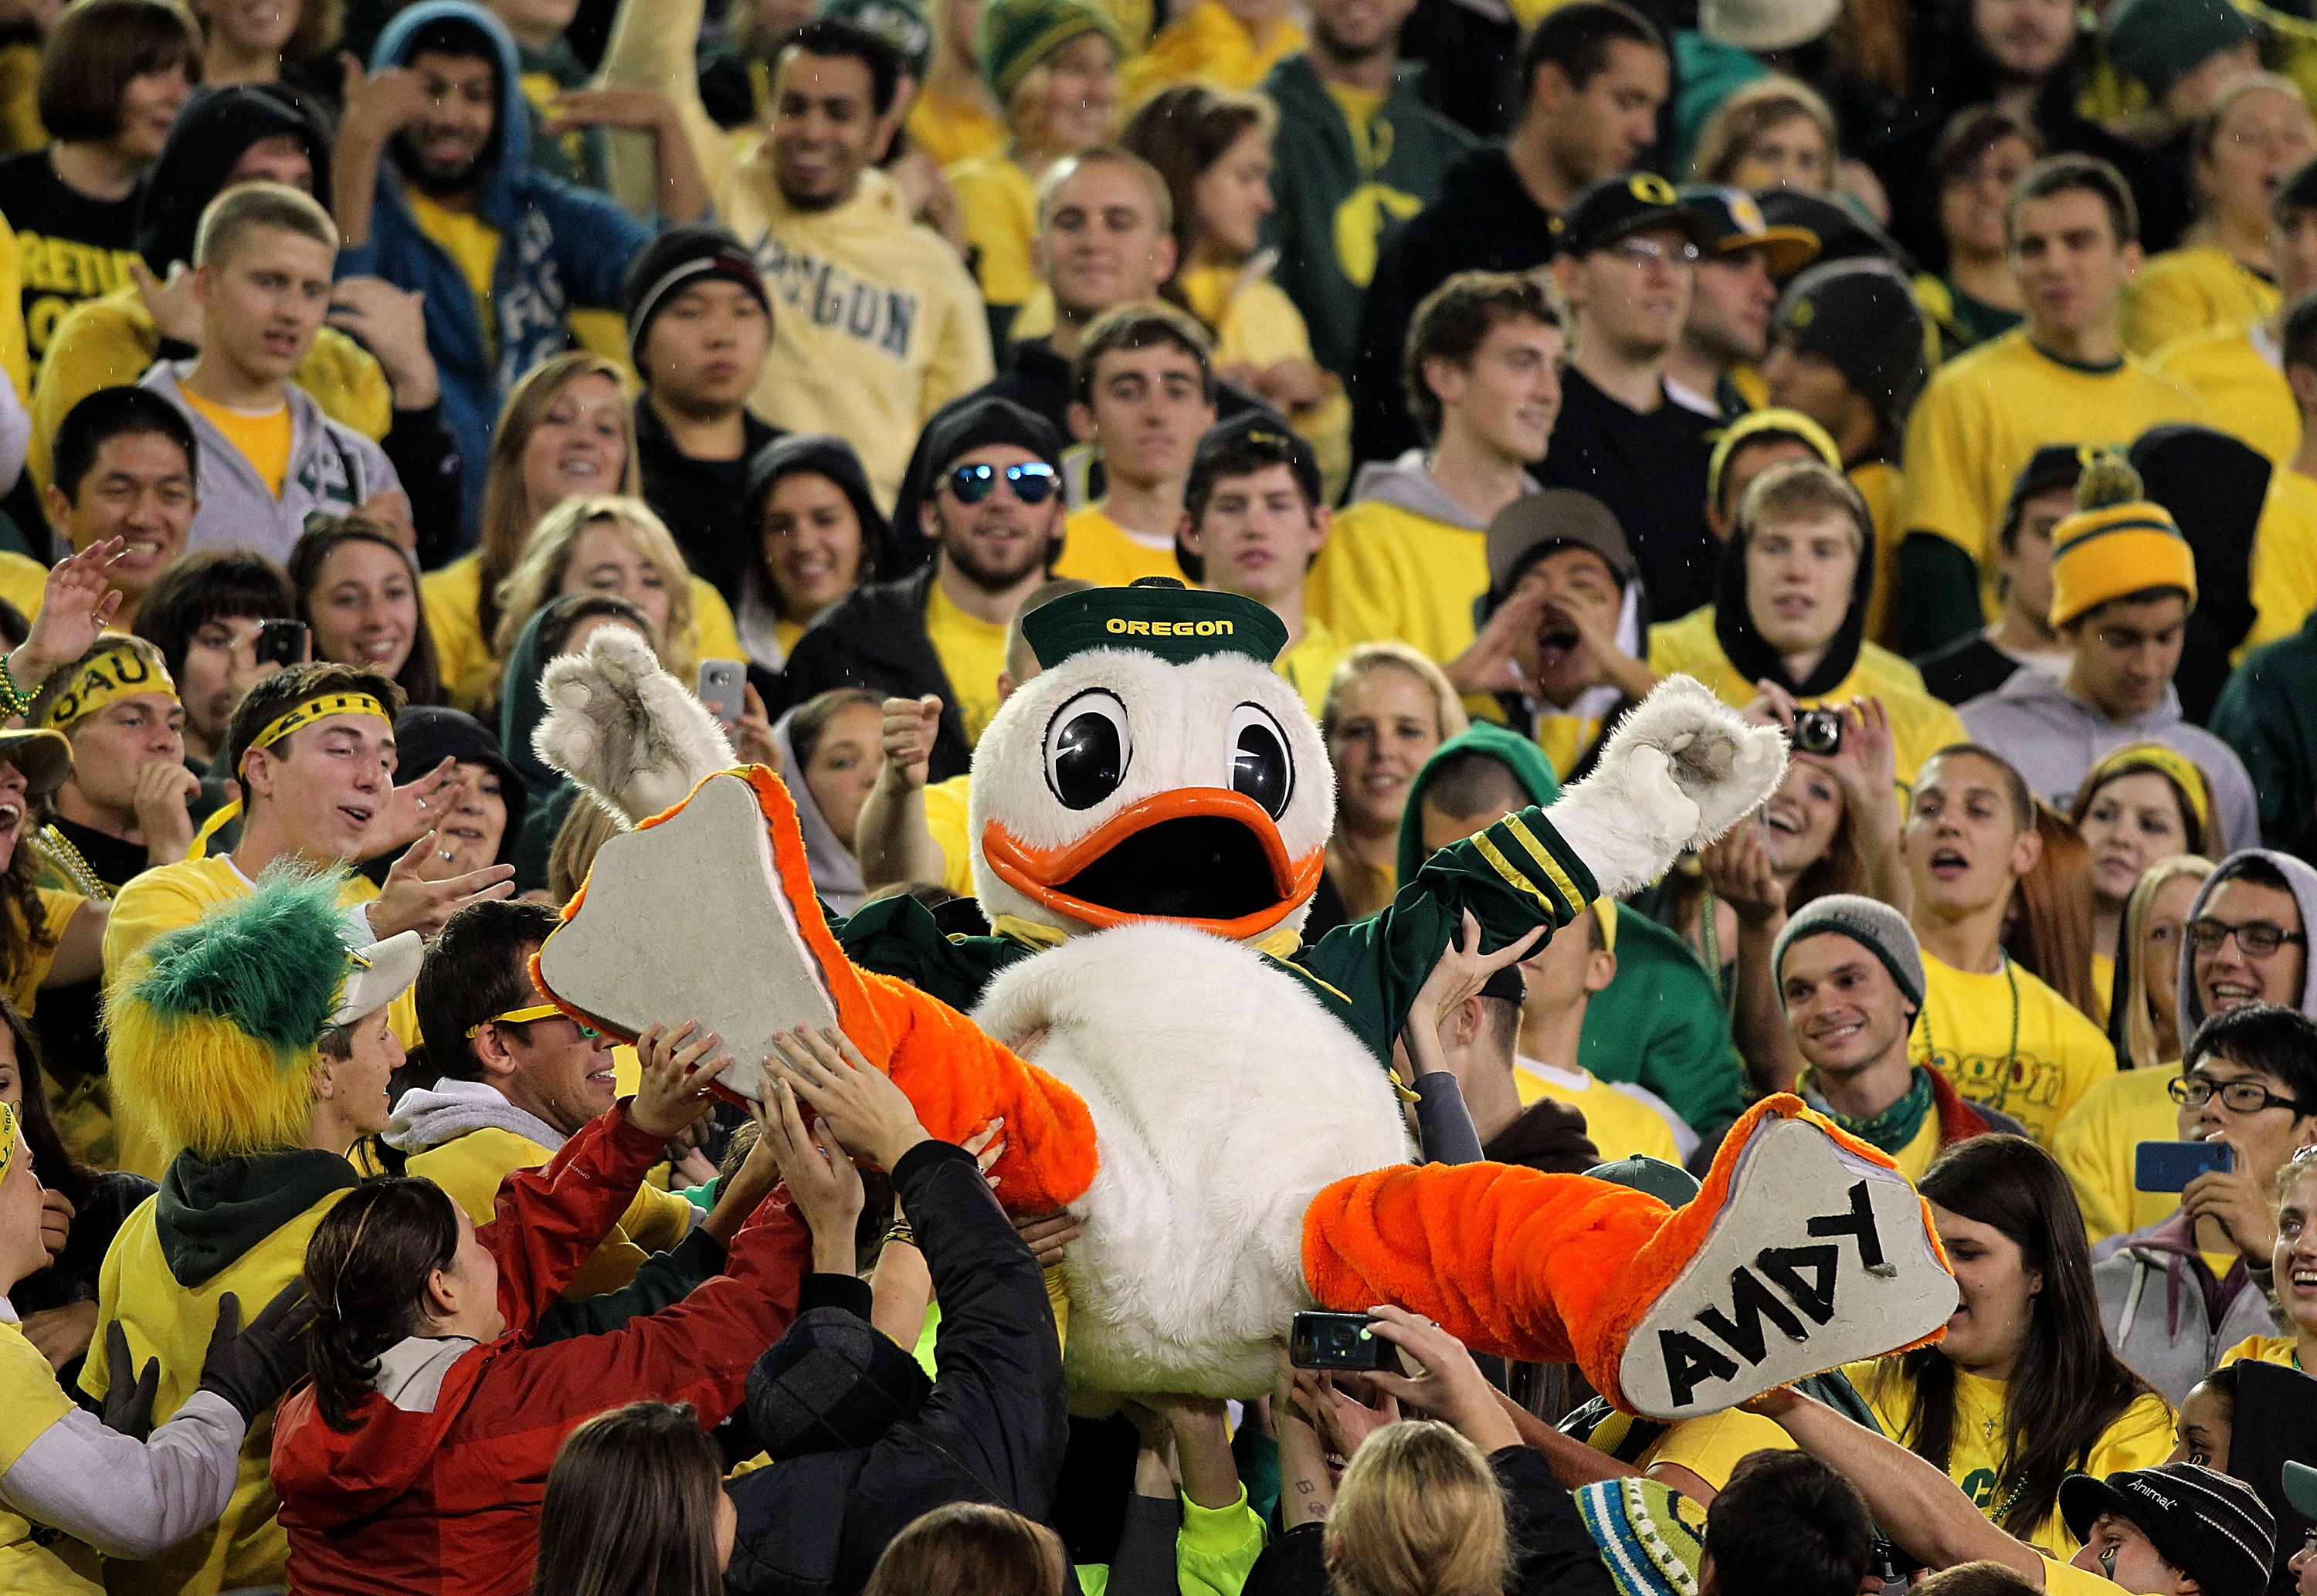 EUGENE, OR - OCTOBER 21:  The Oregon Duck mascot is lifted into the crowd during the game against the UCLA Bruins  on October 21, 2010 at the Autzen Stadium in Eugene, Oregon.  (Photo by Jonathan Ferrey/Getty Images)